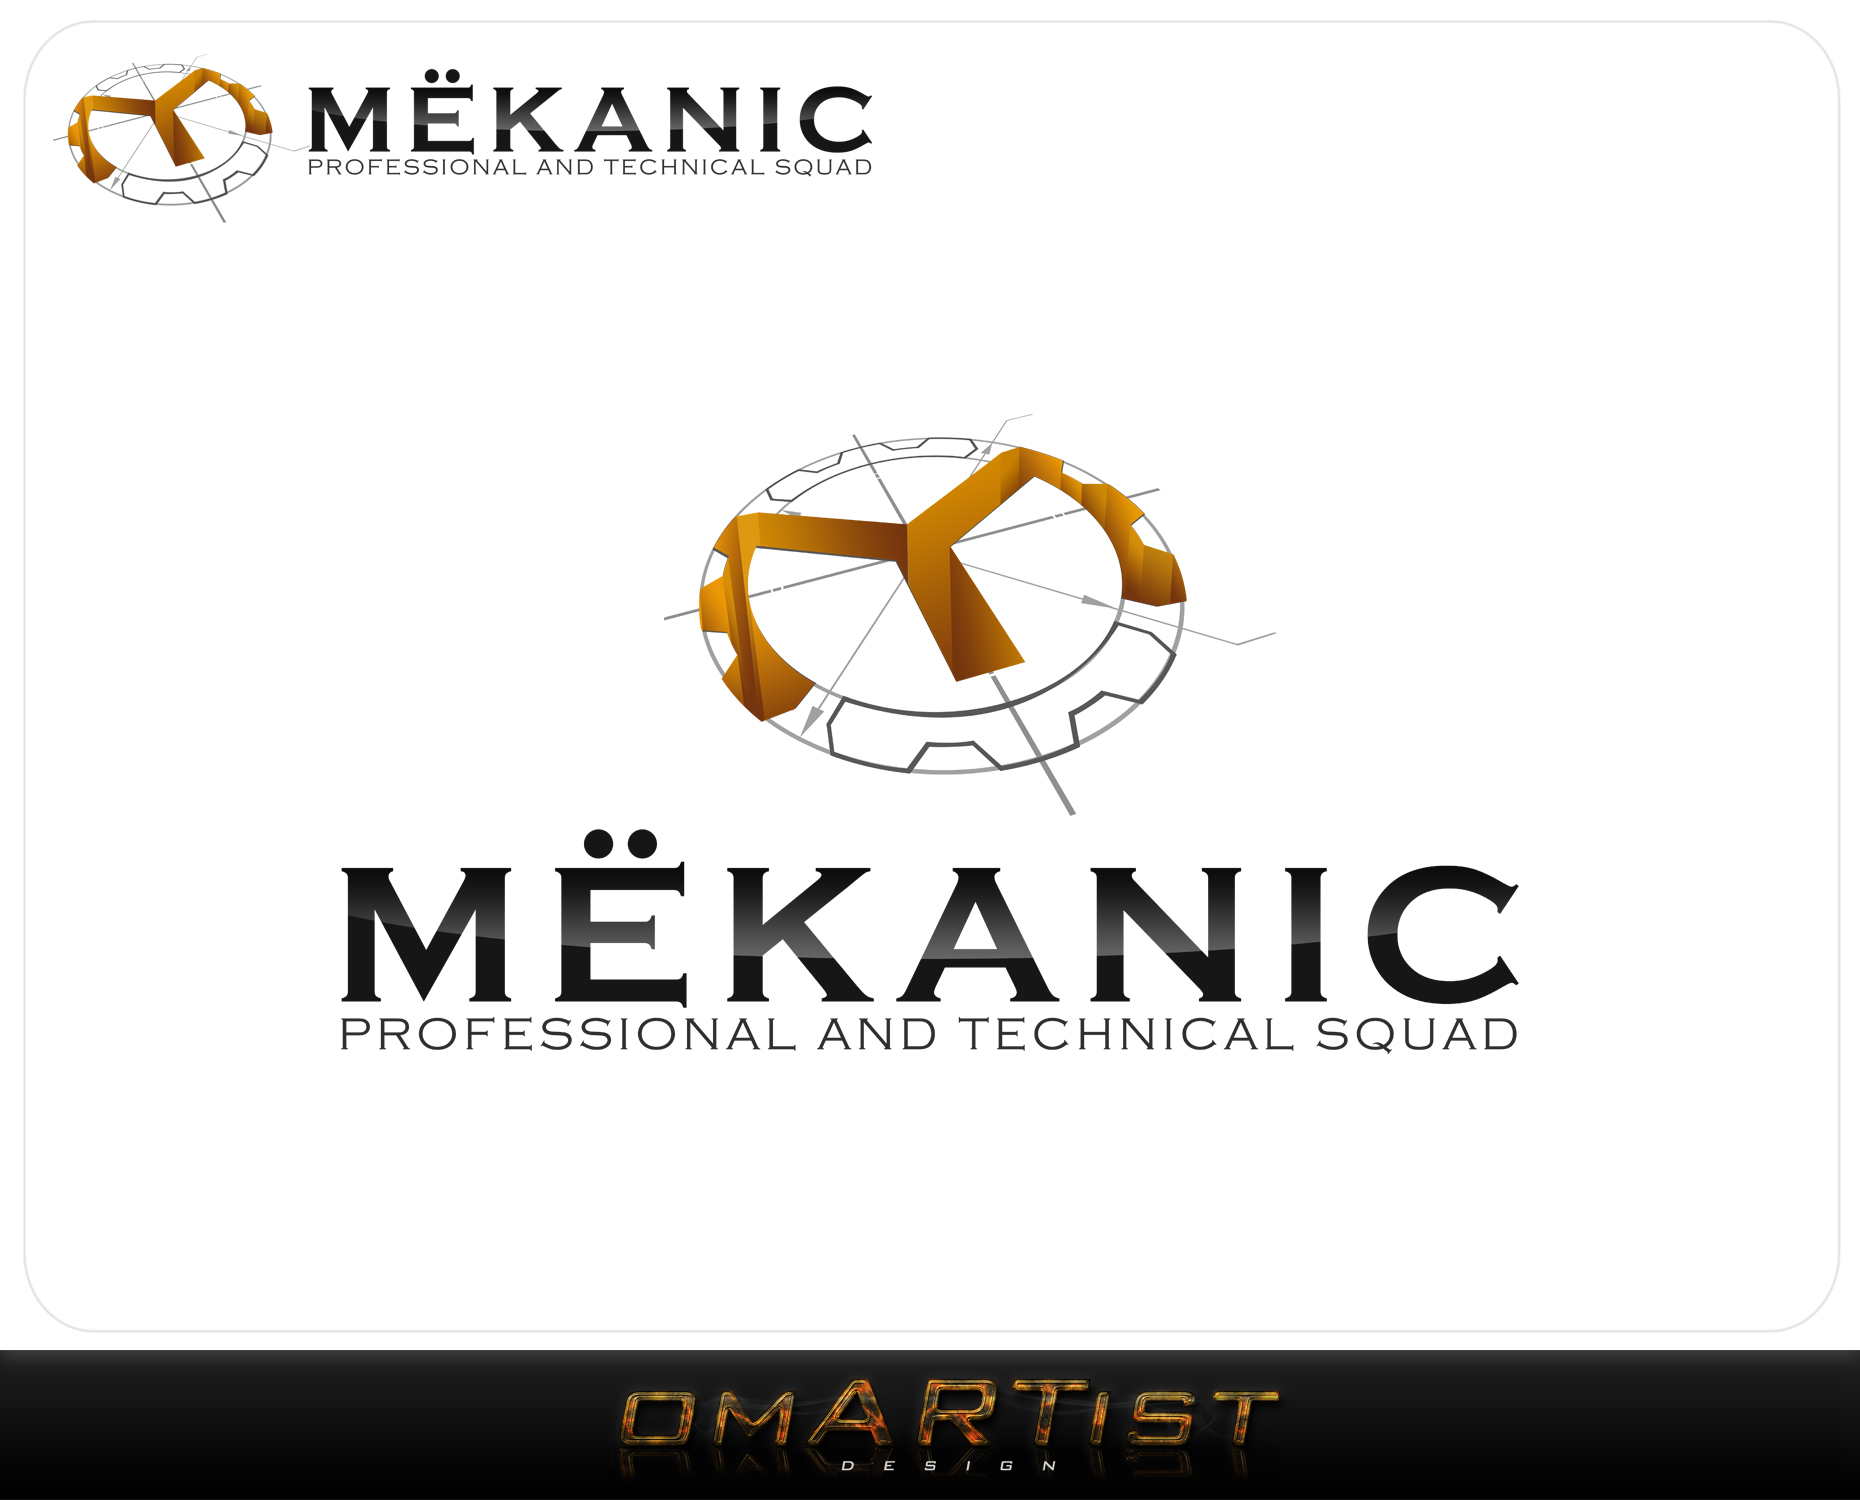 Logo Design by omARTist - Entry No. 372 in the Logo Design Contest Creative Logo Design for MËKANIC - Professional and technical squad.